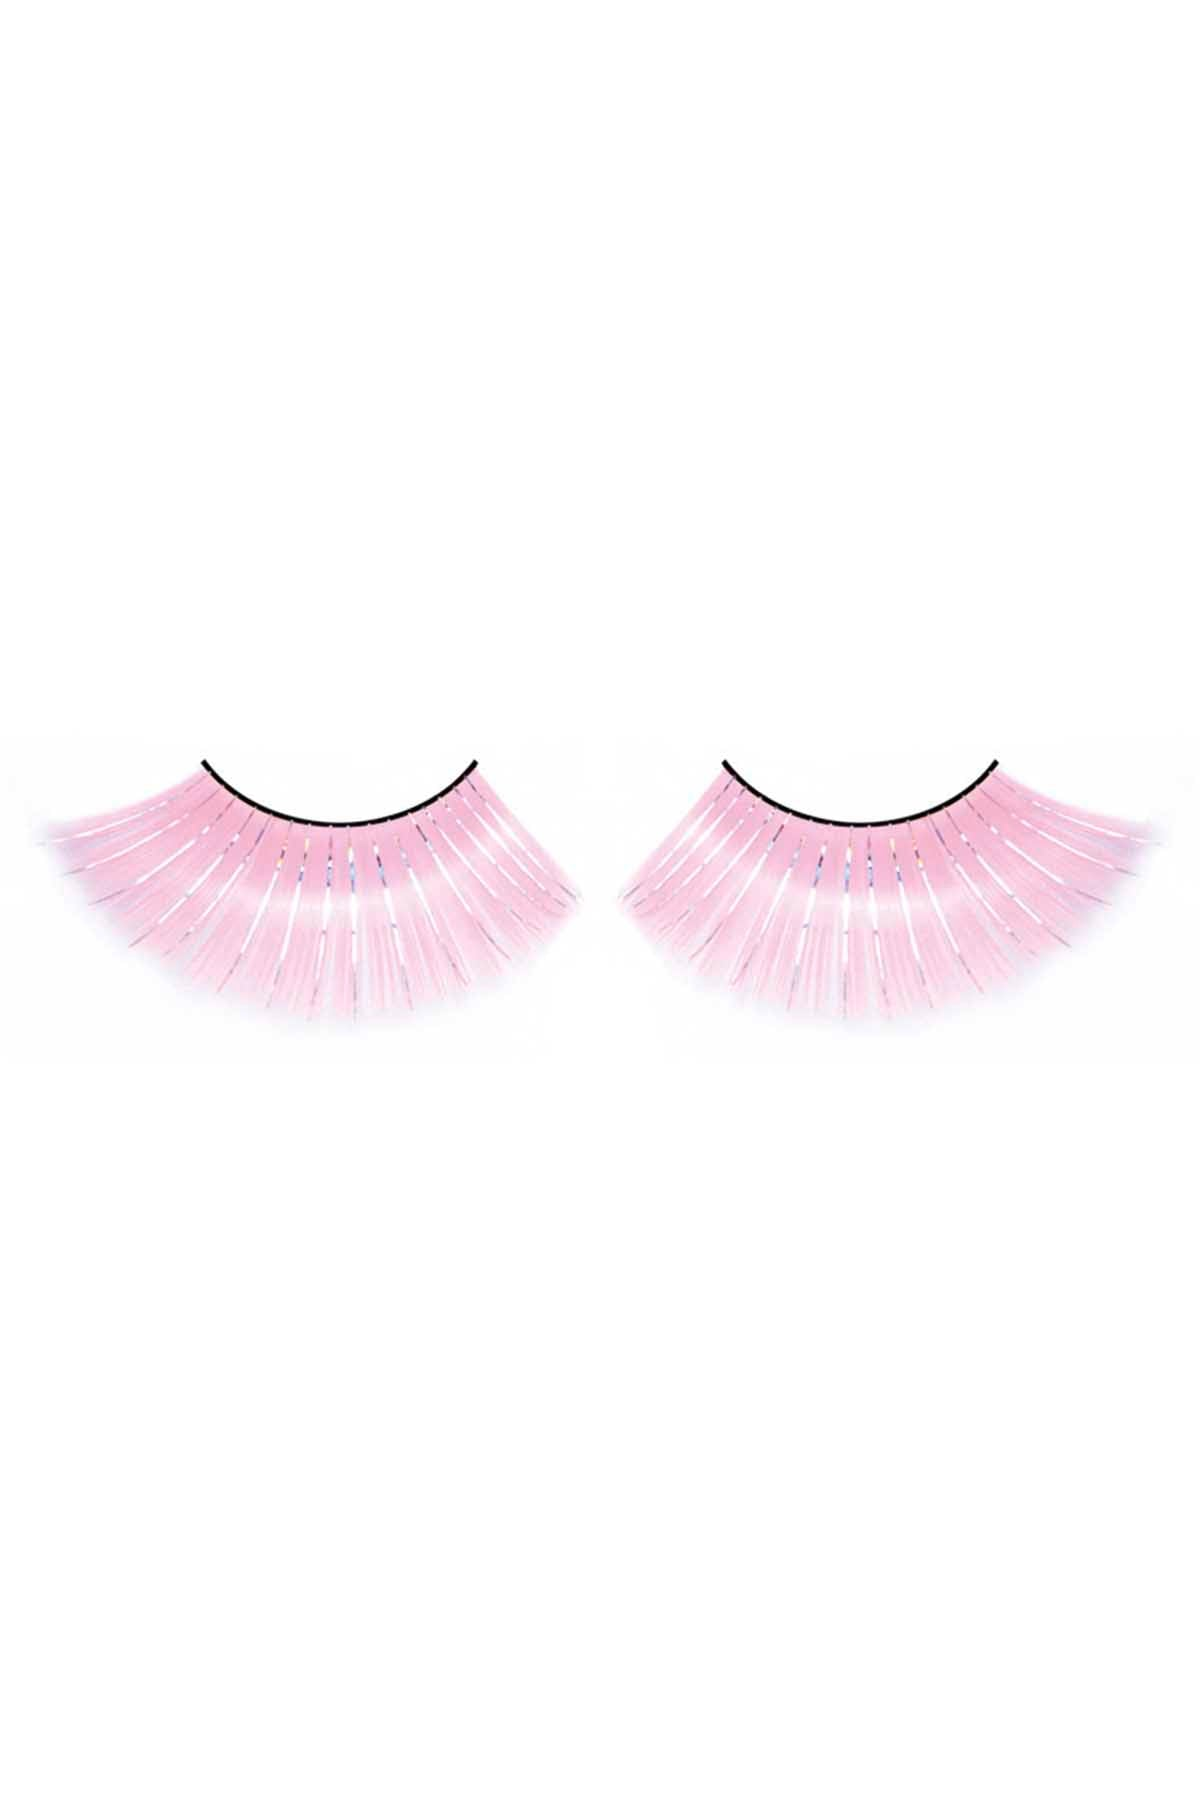 Baci Pink Glitter Magic Colors Eyelashes